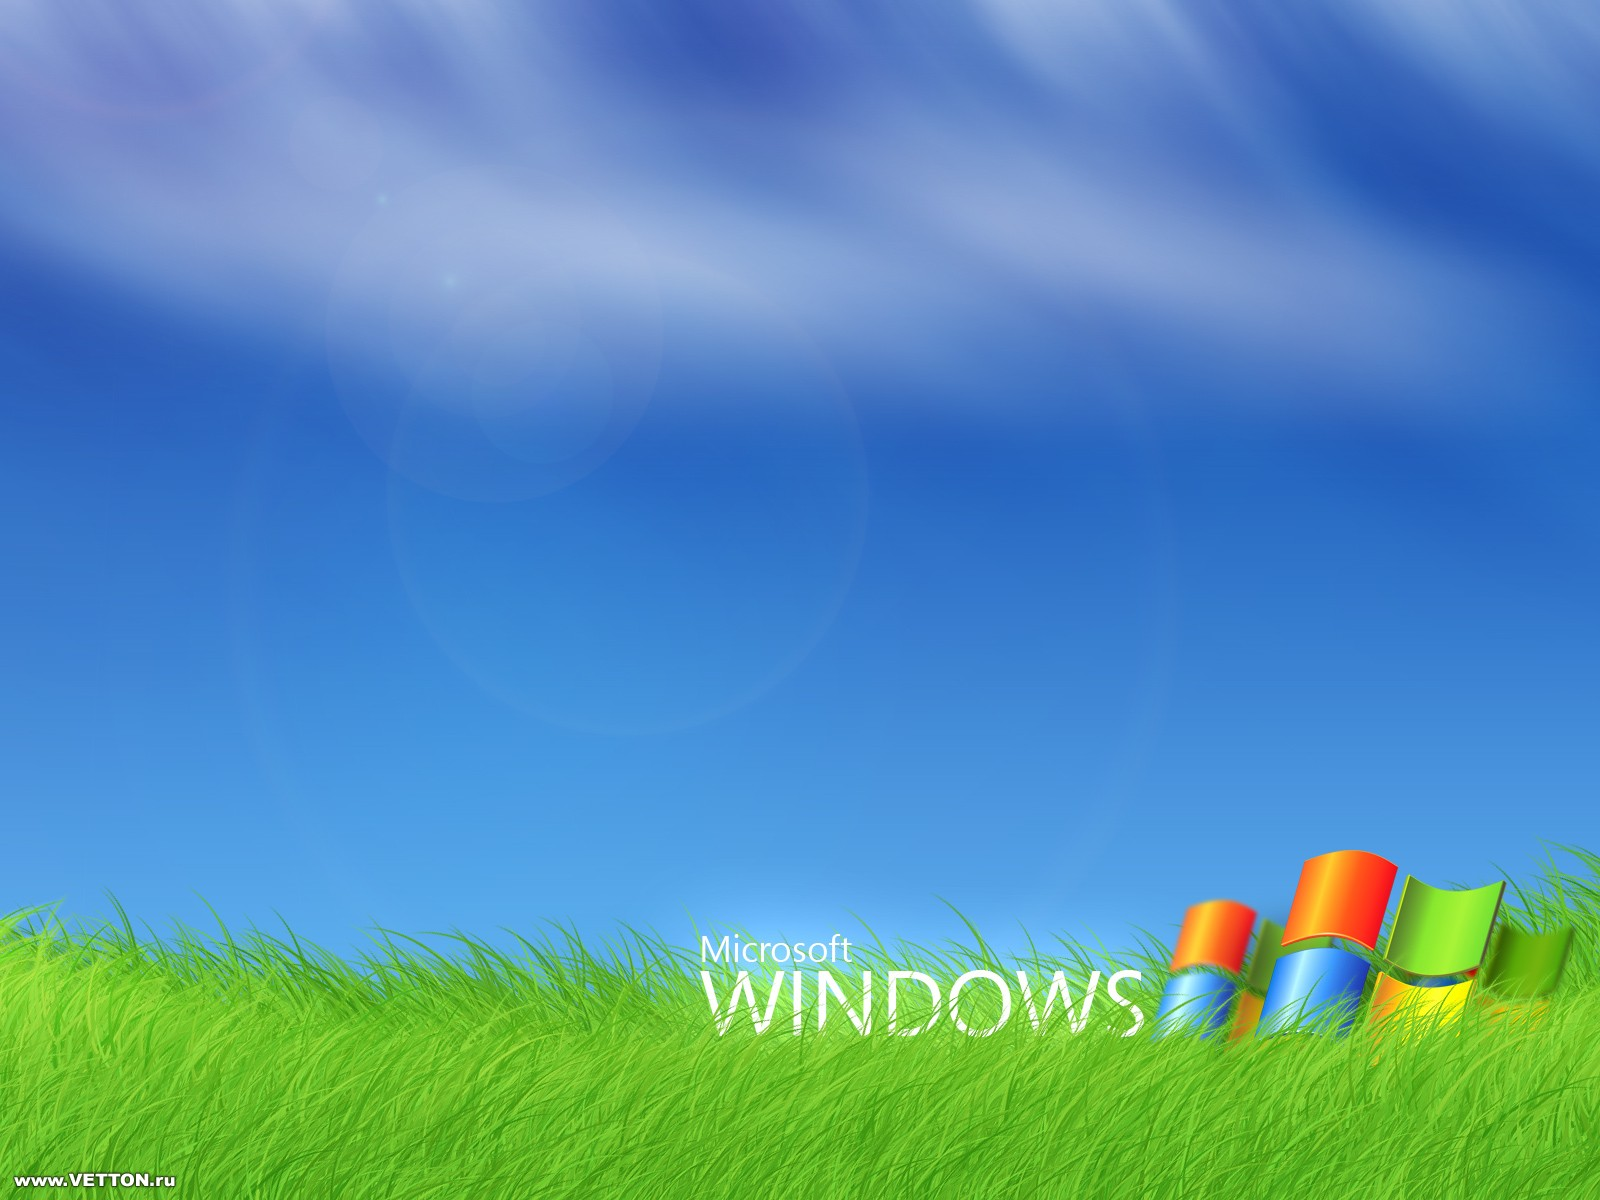 Best Windows Xp Wallpaper